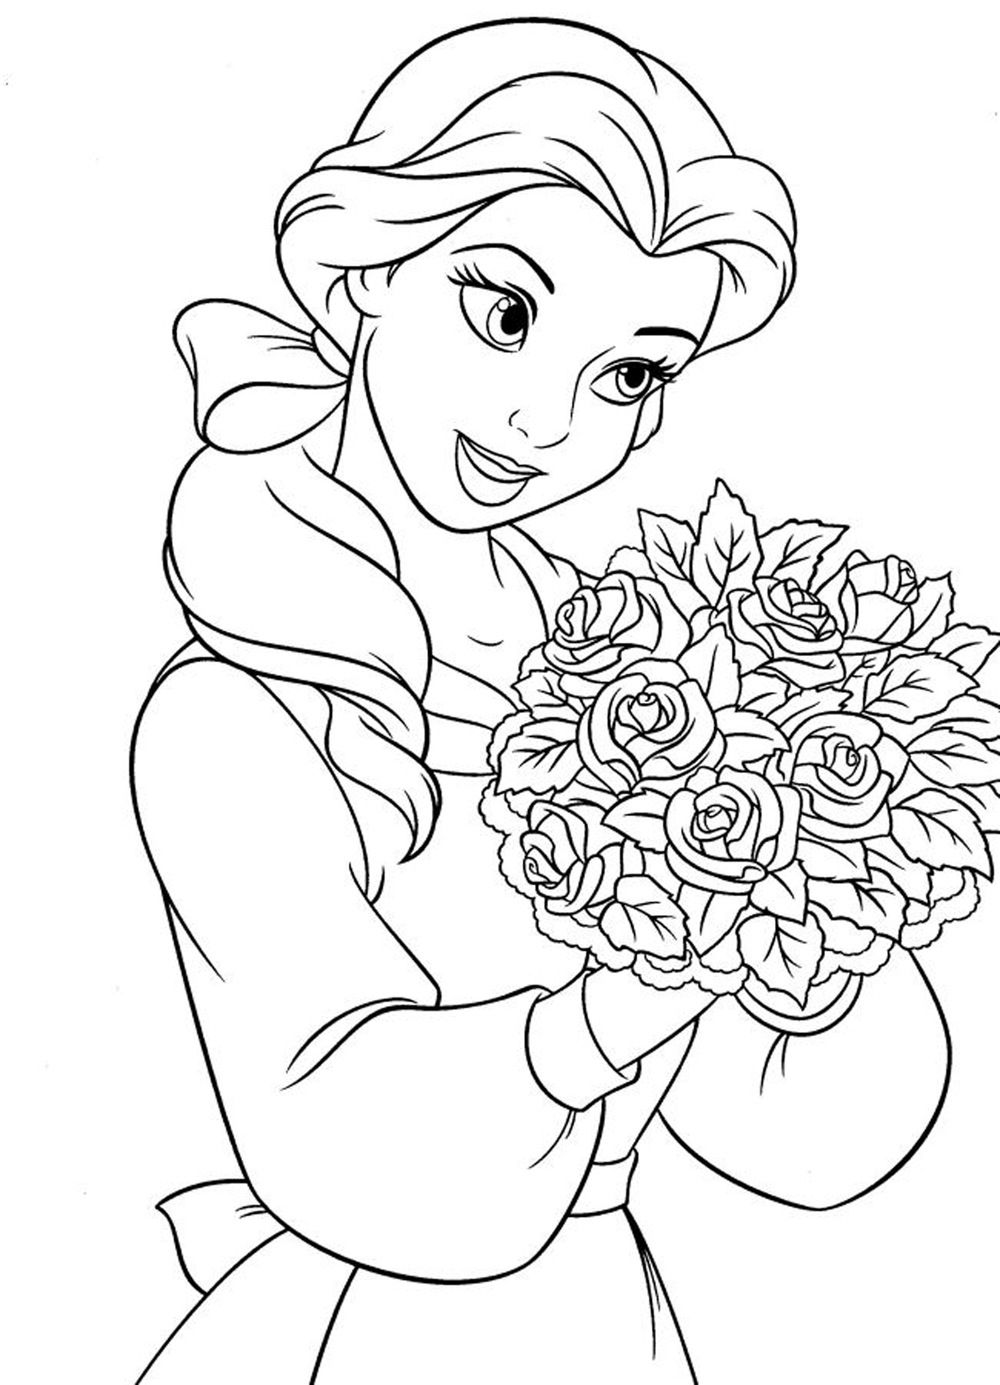 Princess Coloring Pages For Girls Free Large Images Belle Coloring Pages Disney Princess Coloring Pages Disney Coloring Sheets